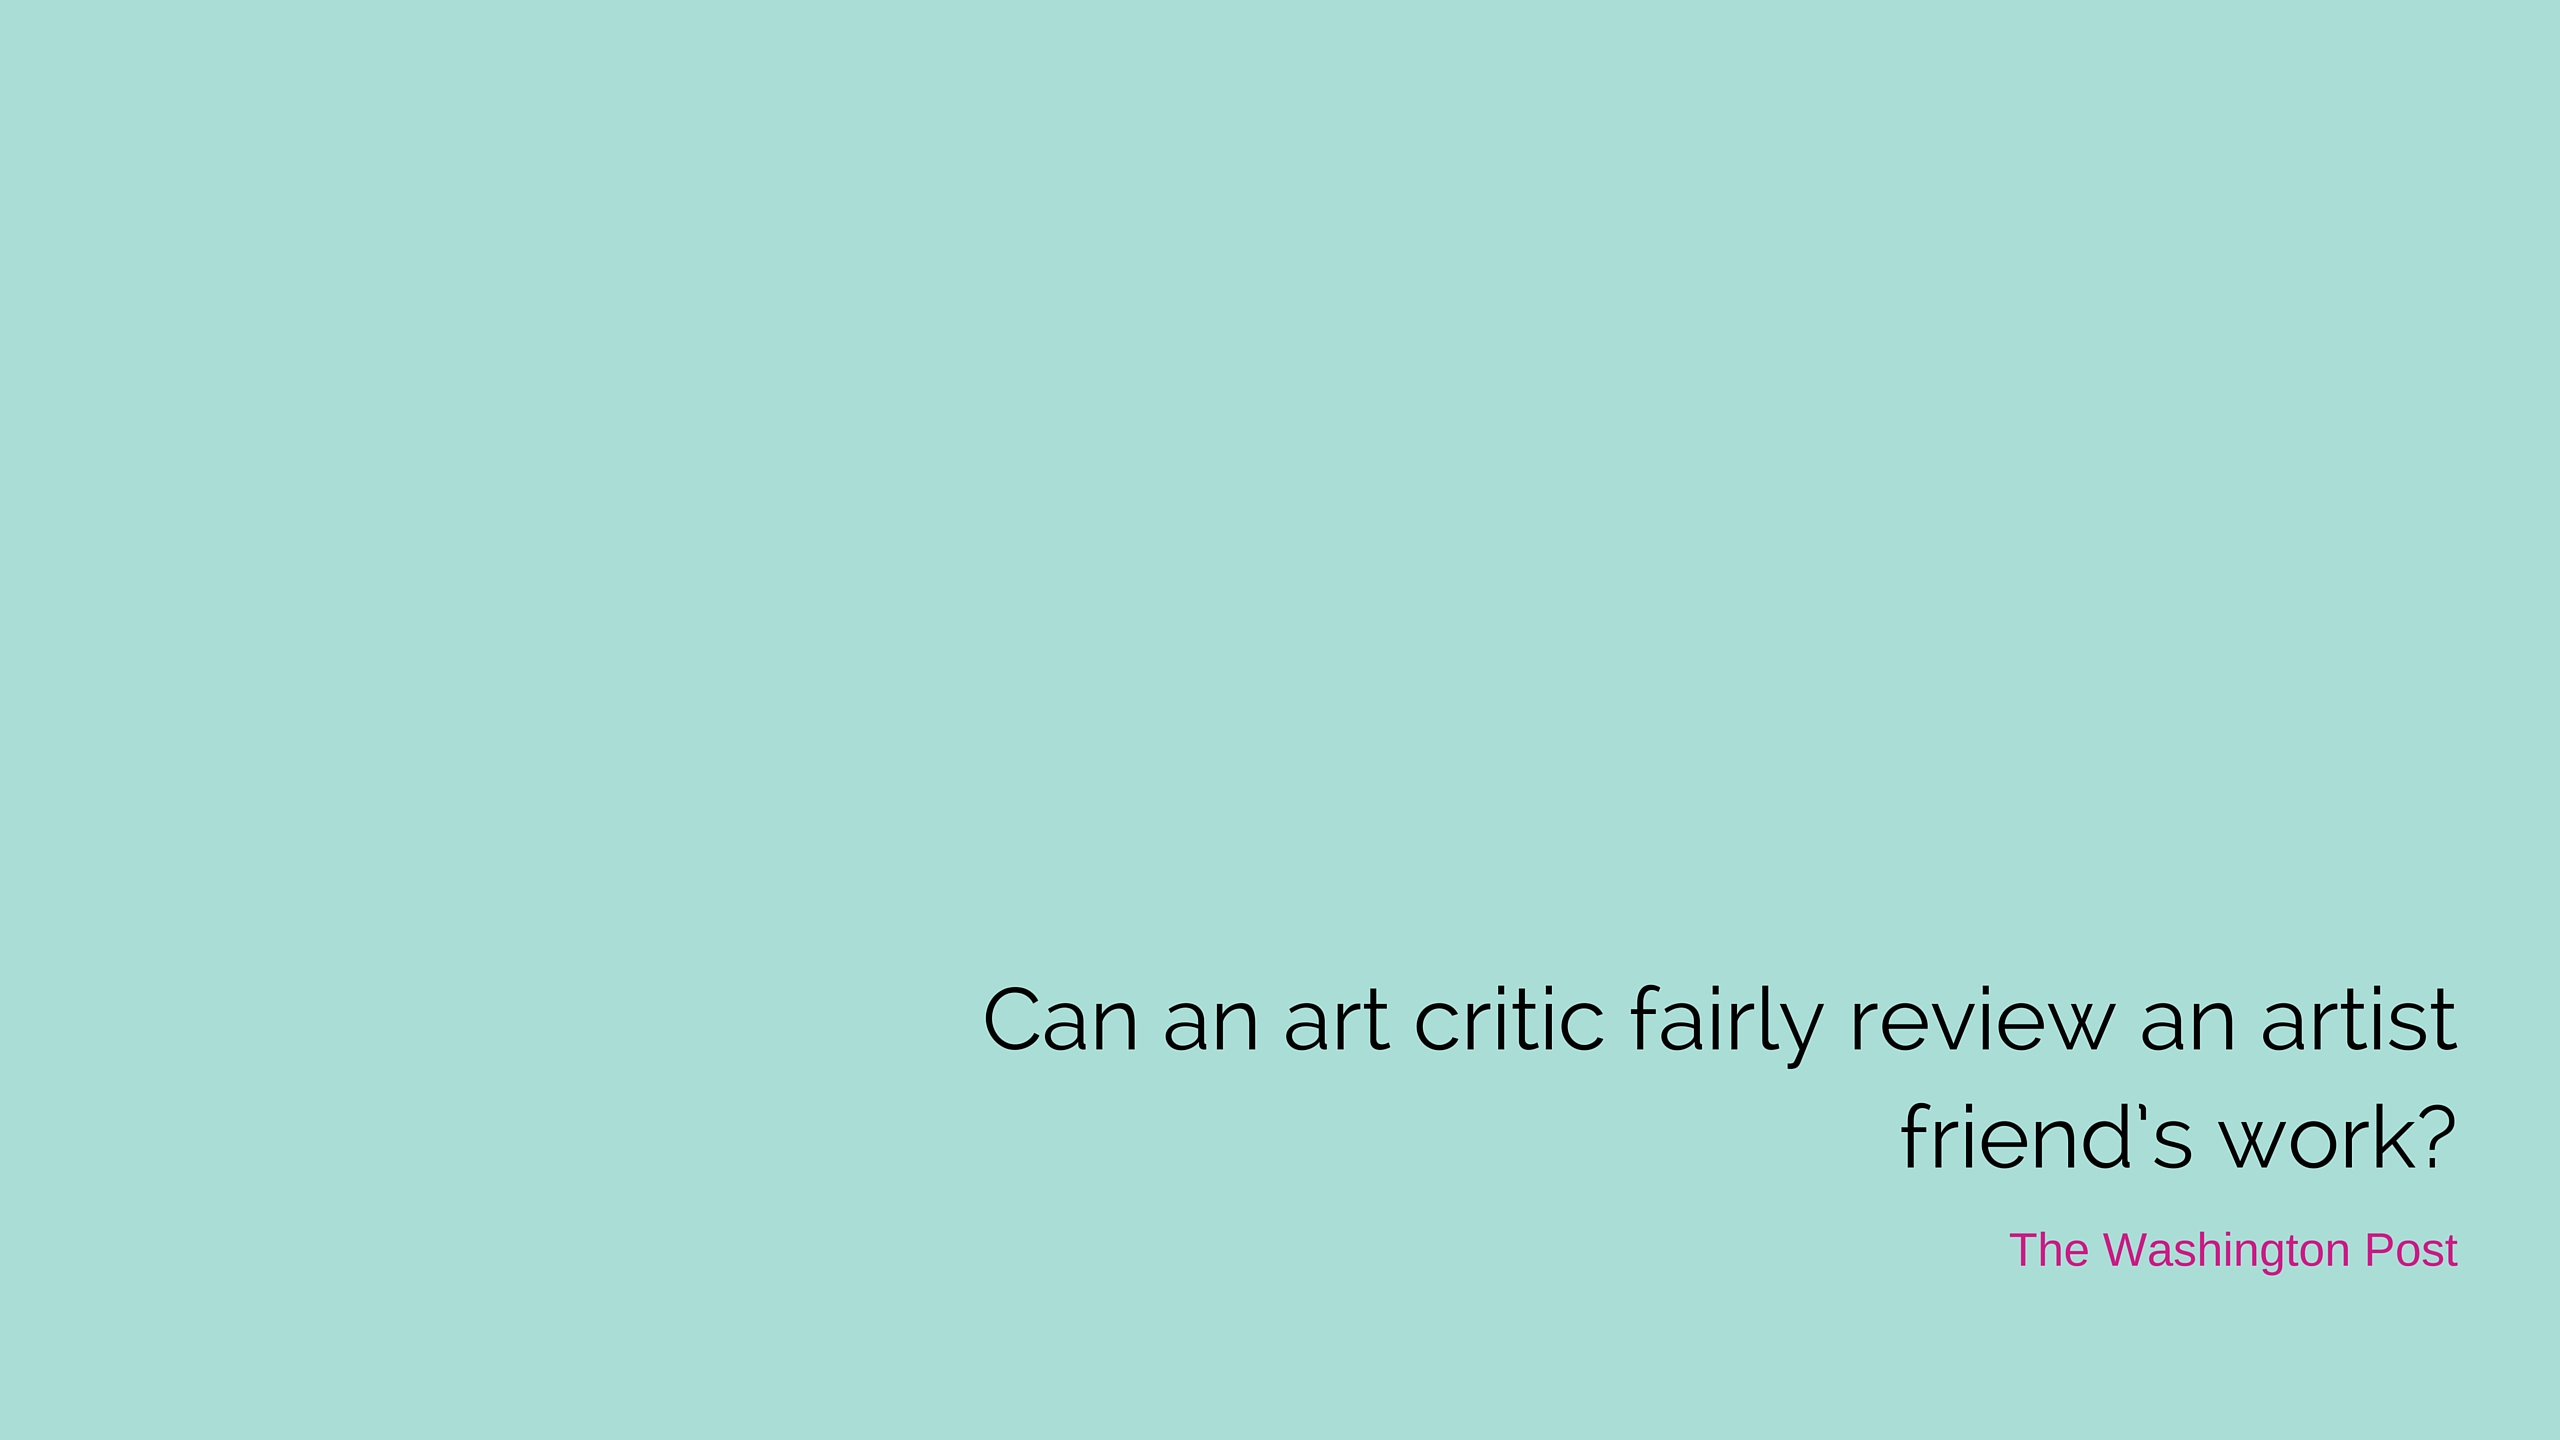 Can an art critic fairly review an artist friend's work?